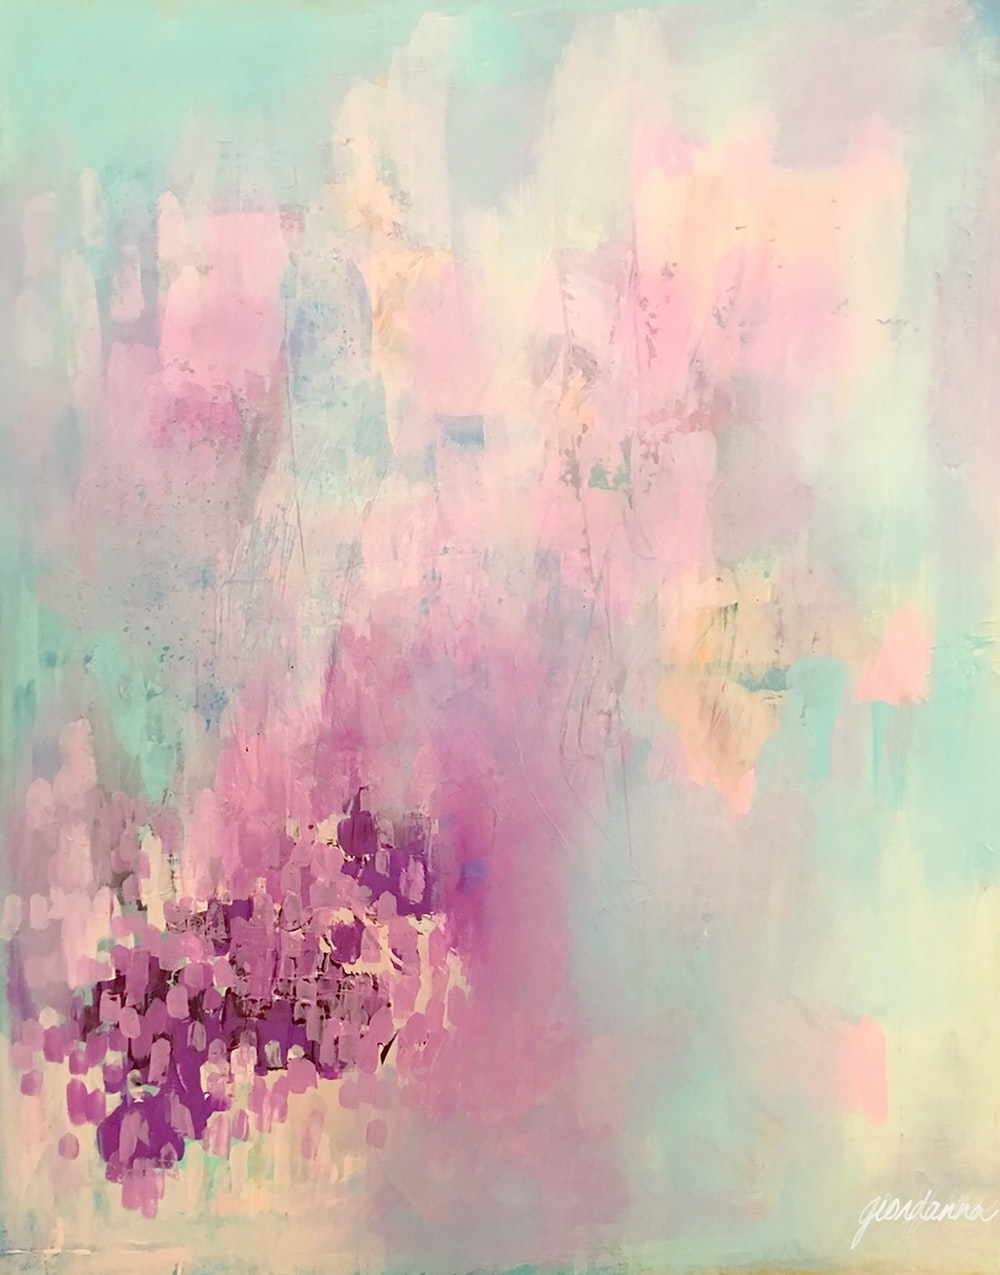 900 Watercolor Background Images Download Hd Backgrounds On Unsplash